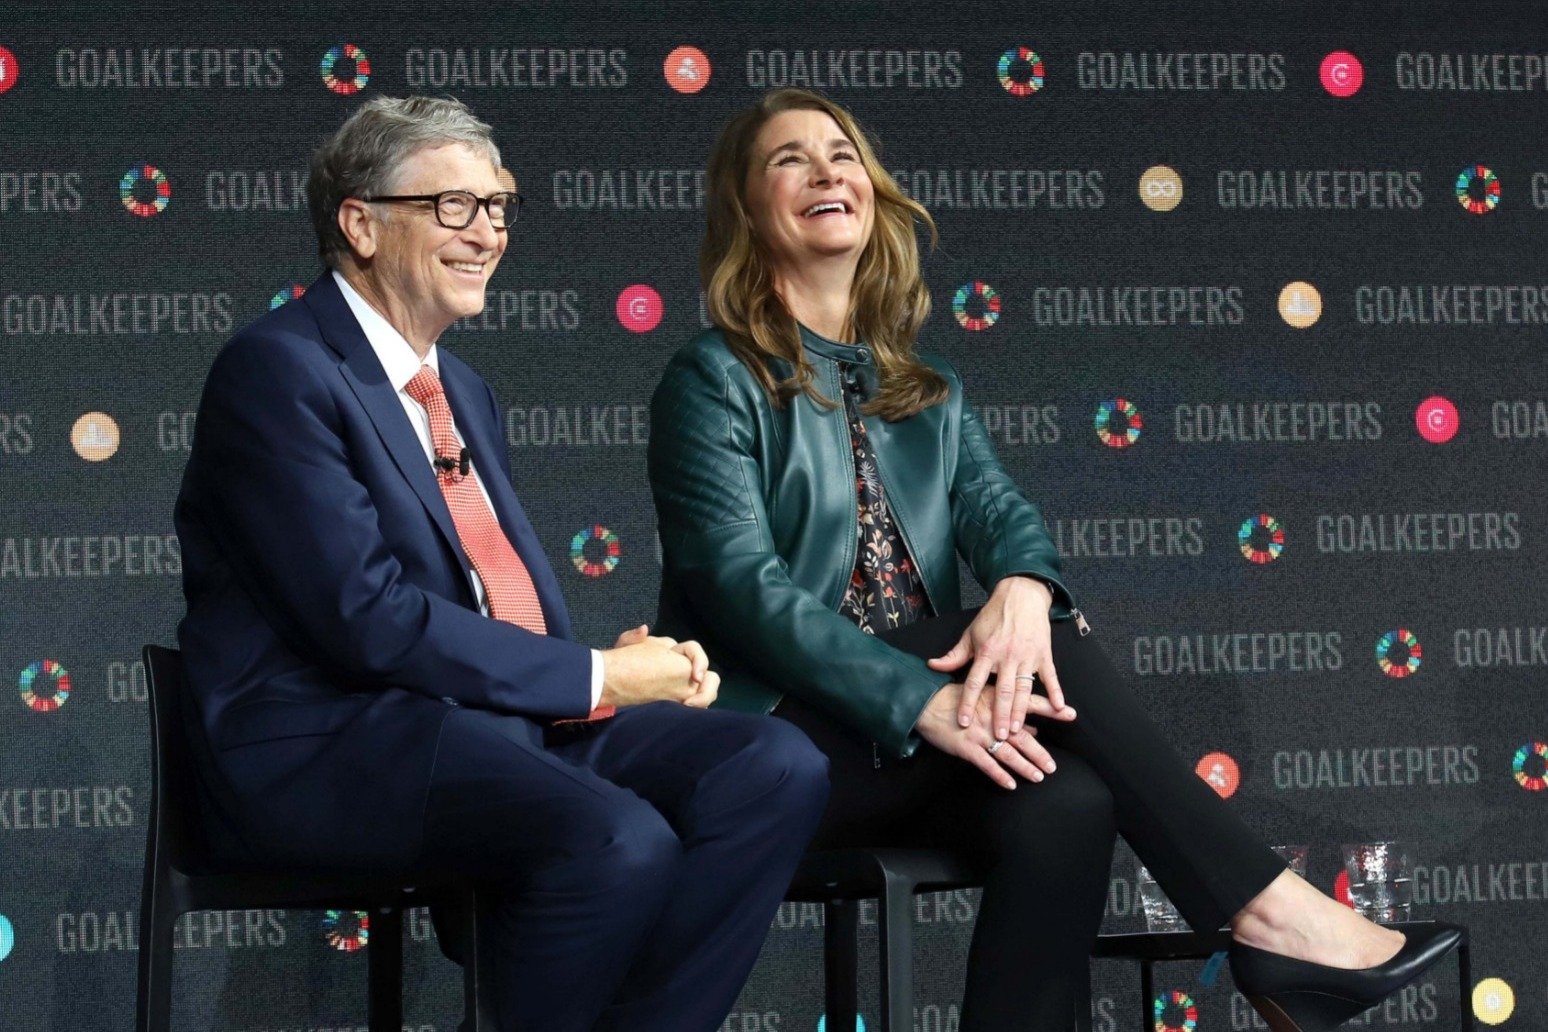 Bill and Melinda Gates announce they are ending their marriage thumbnail